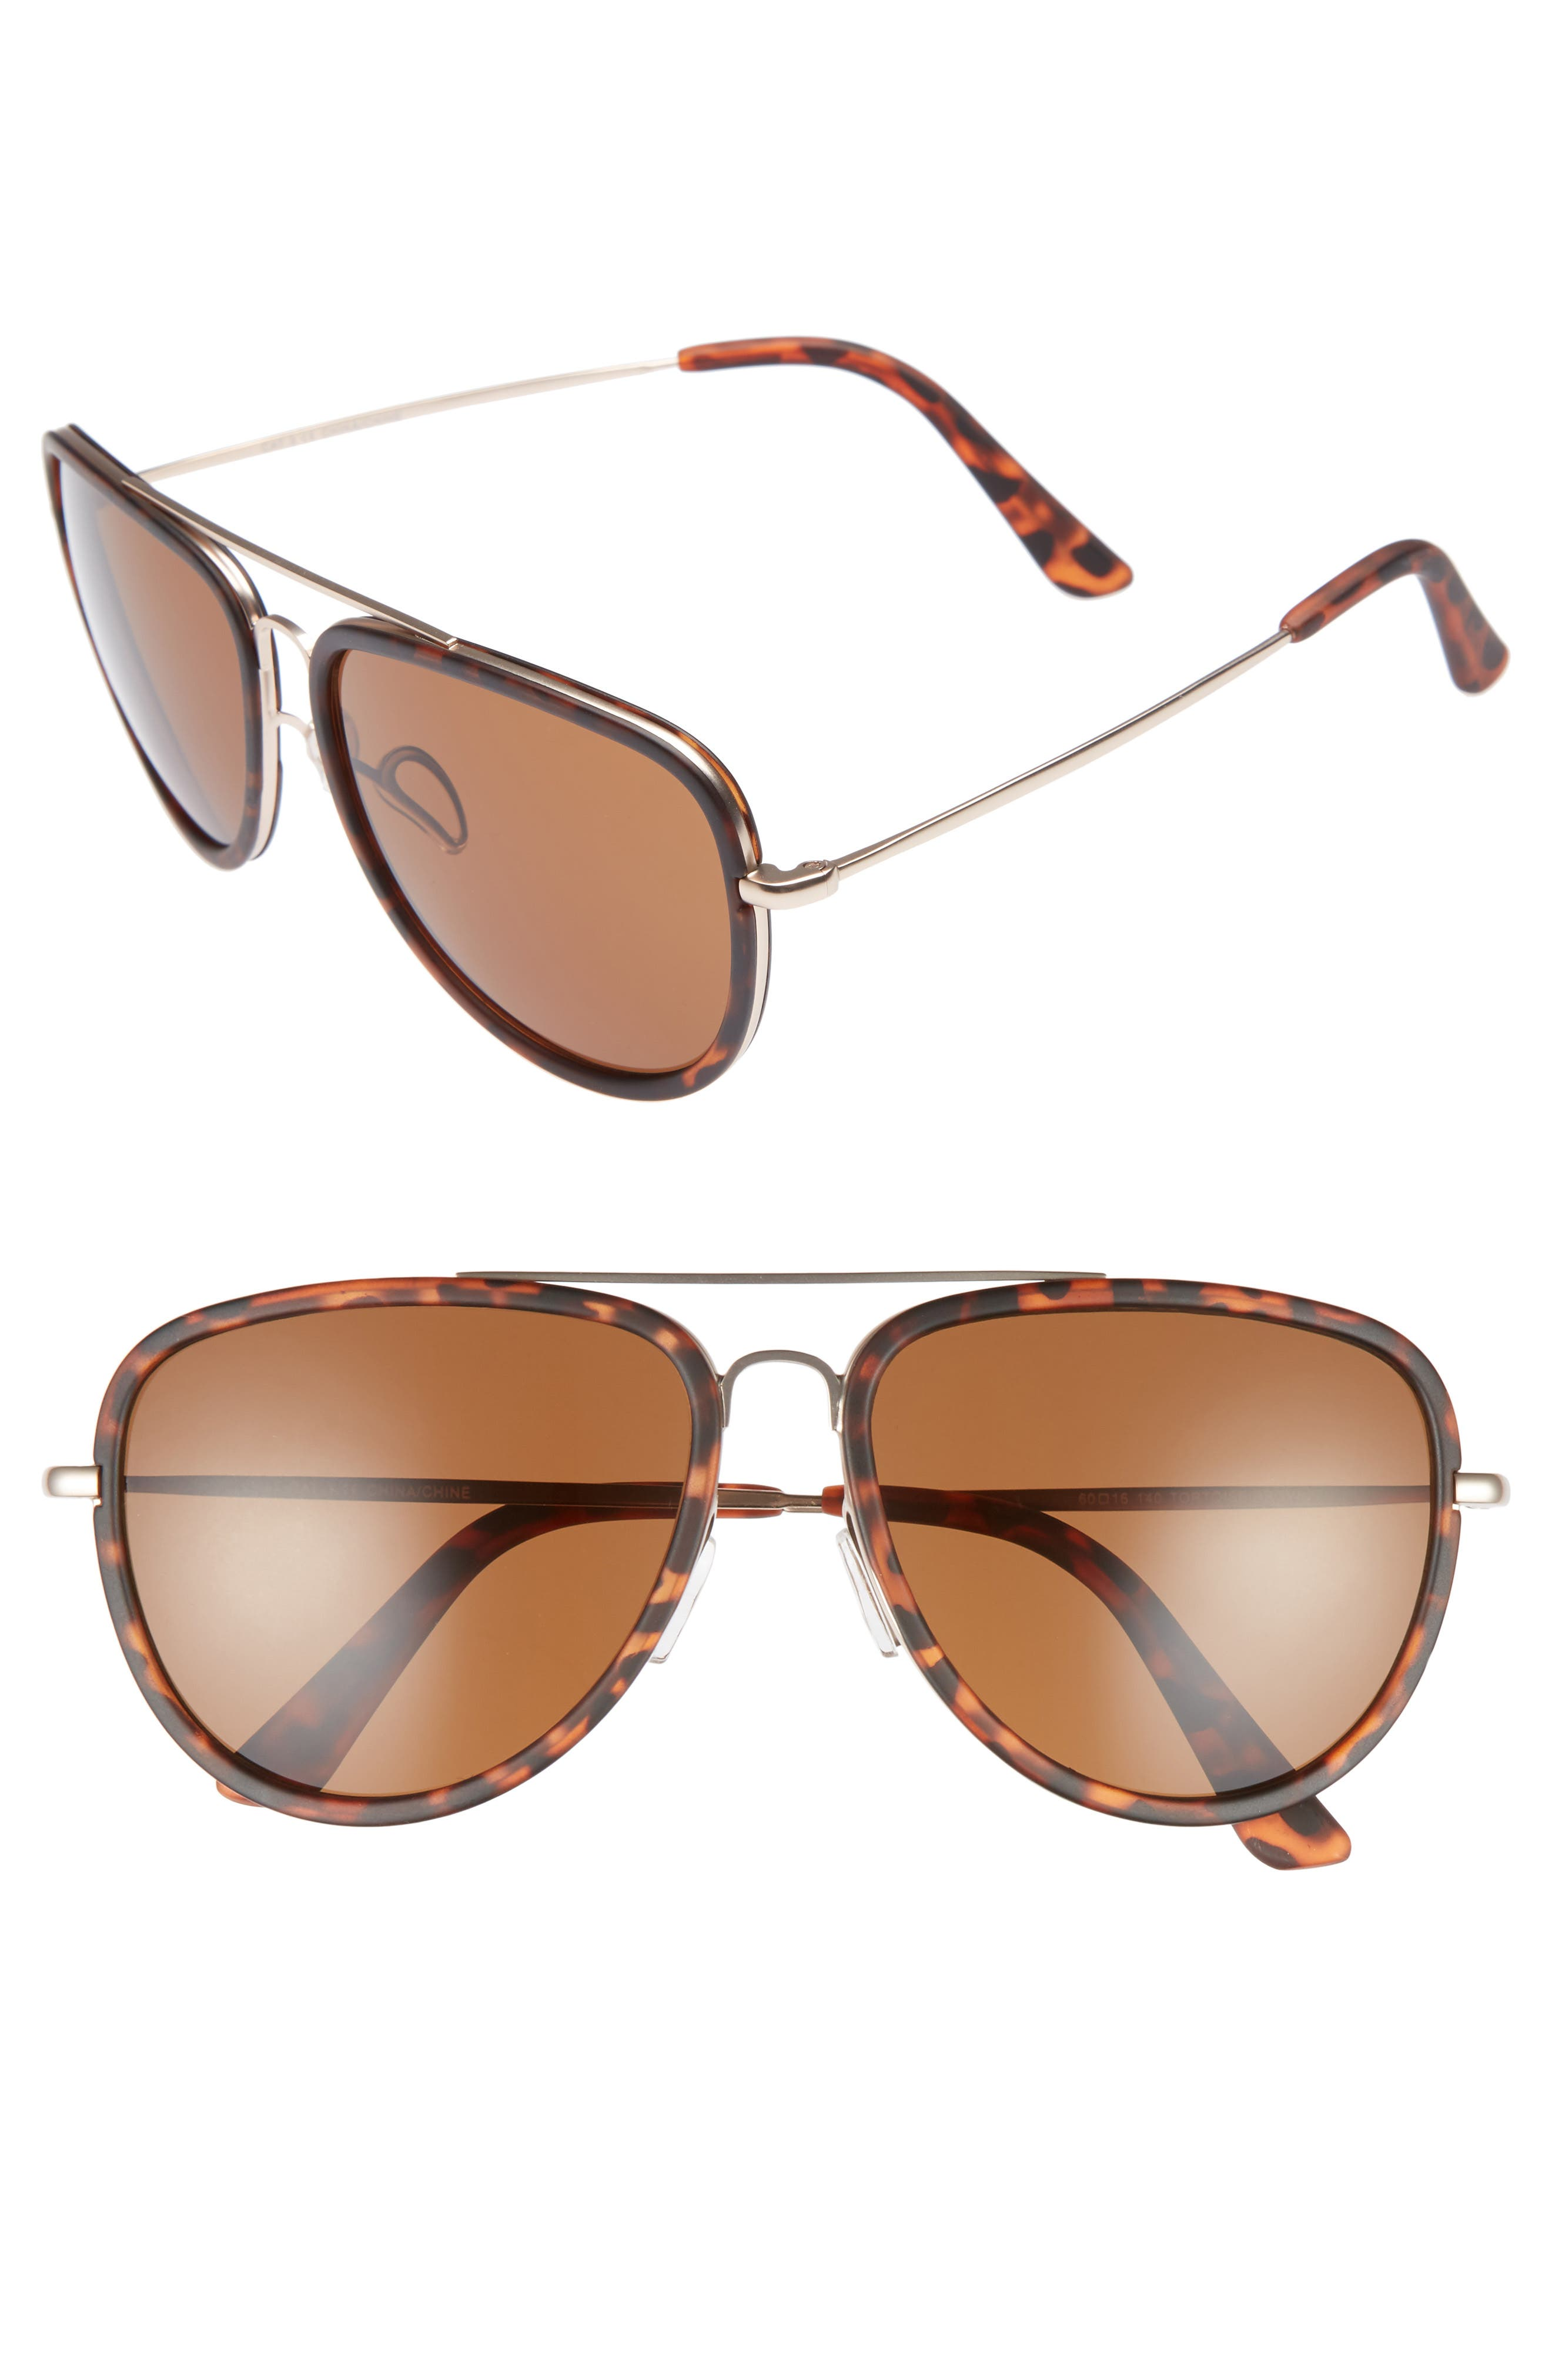 Pace 60mm Aviator Sunglasses,                         Main,                         color, Tortoise/ Brown